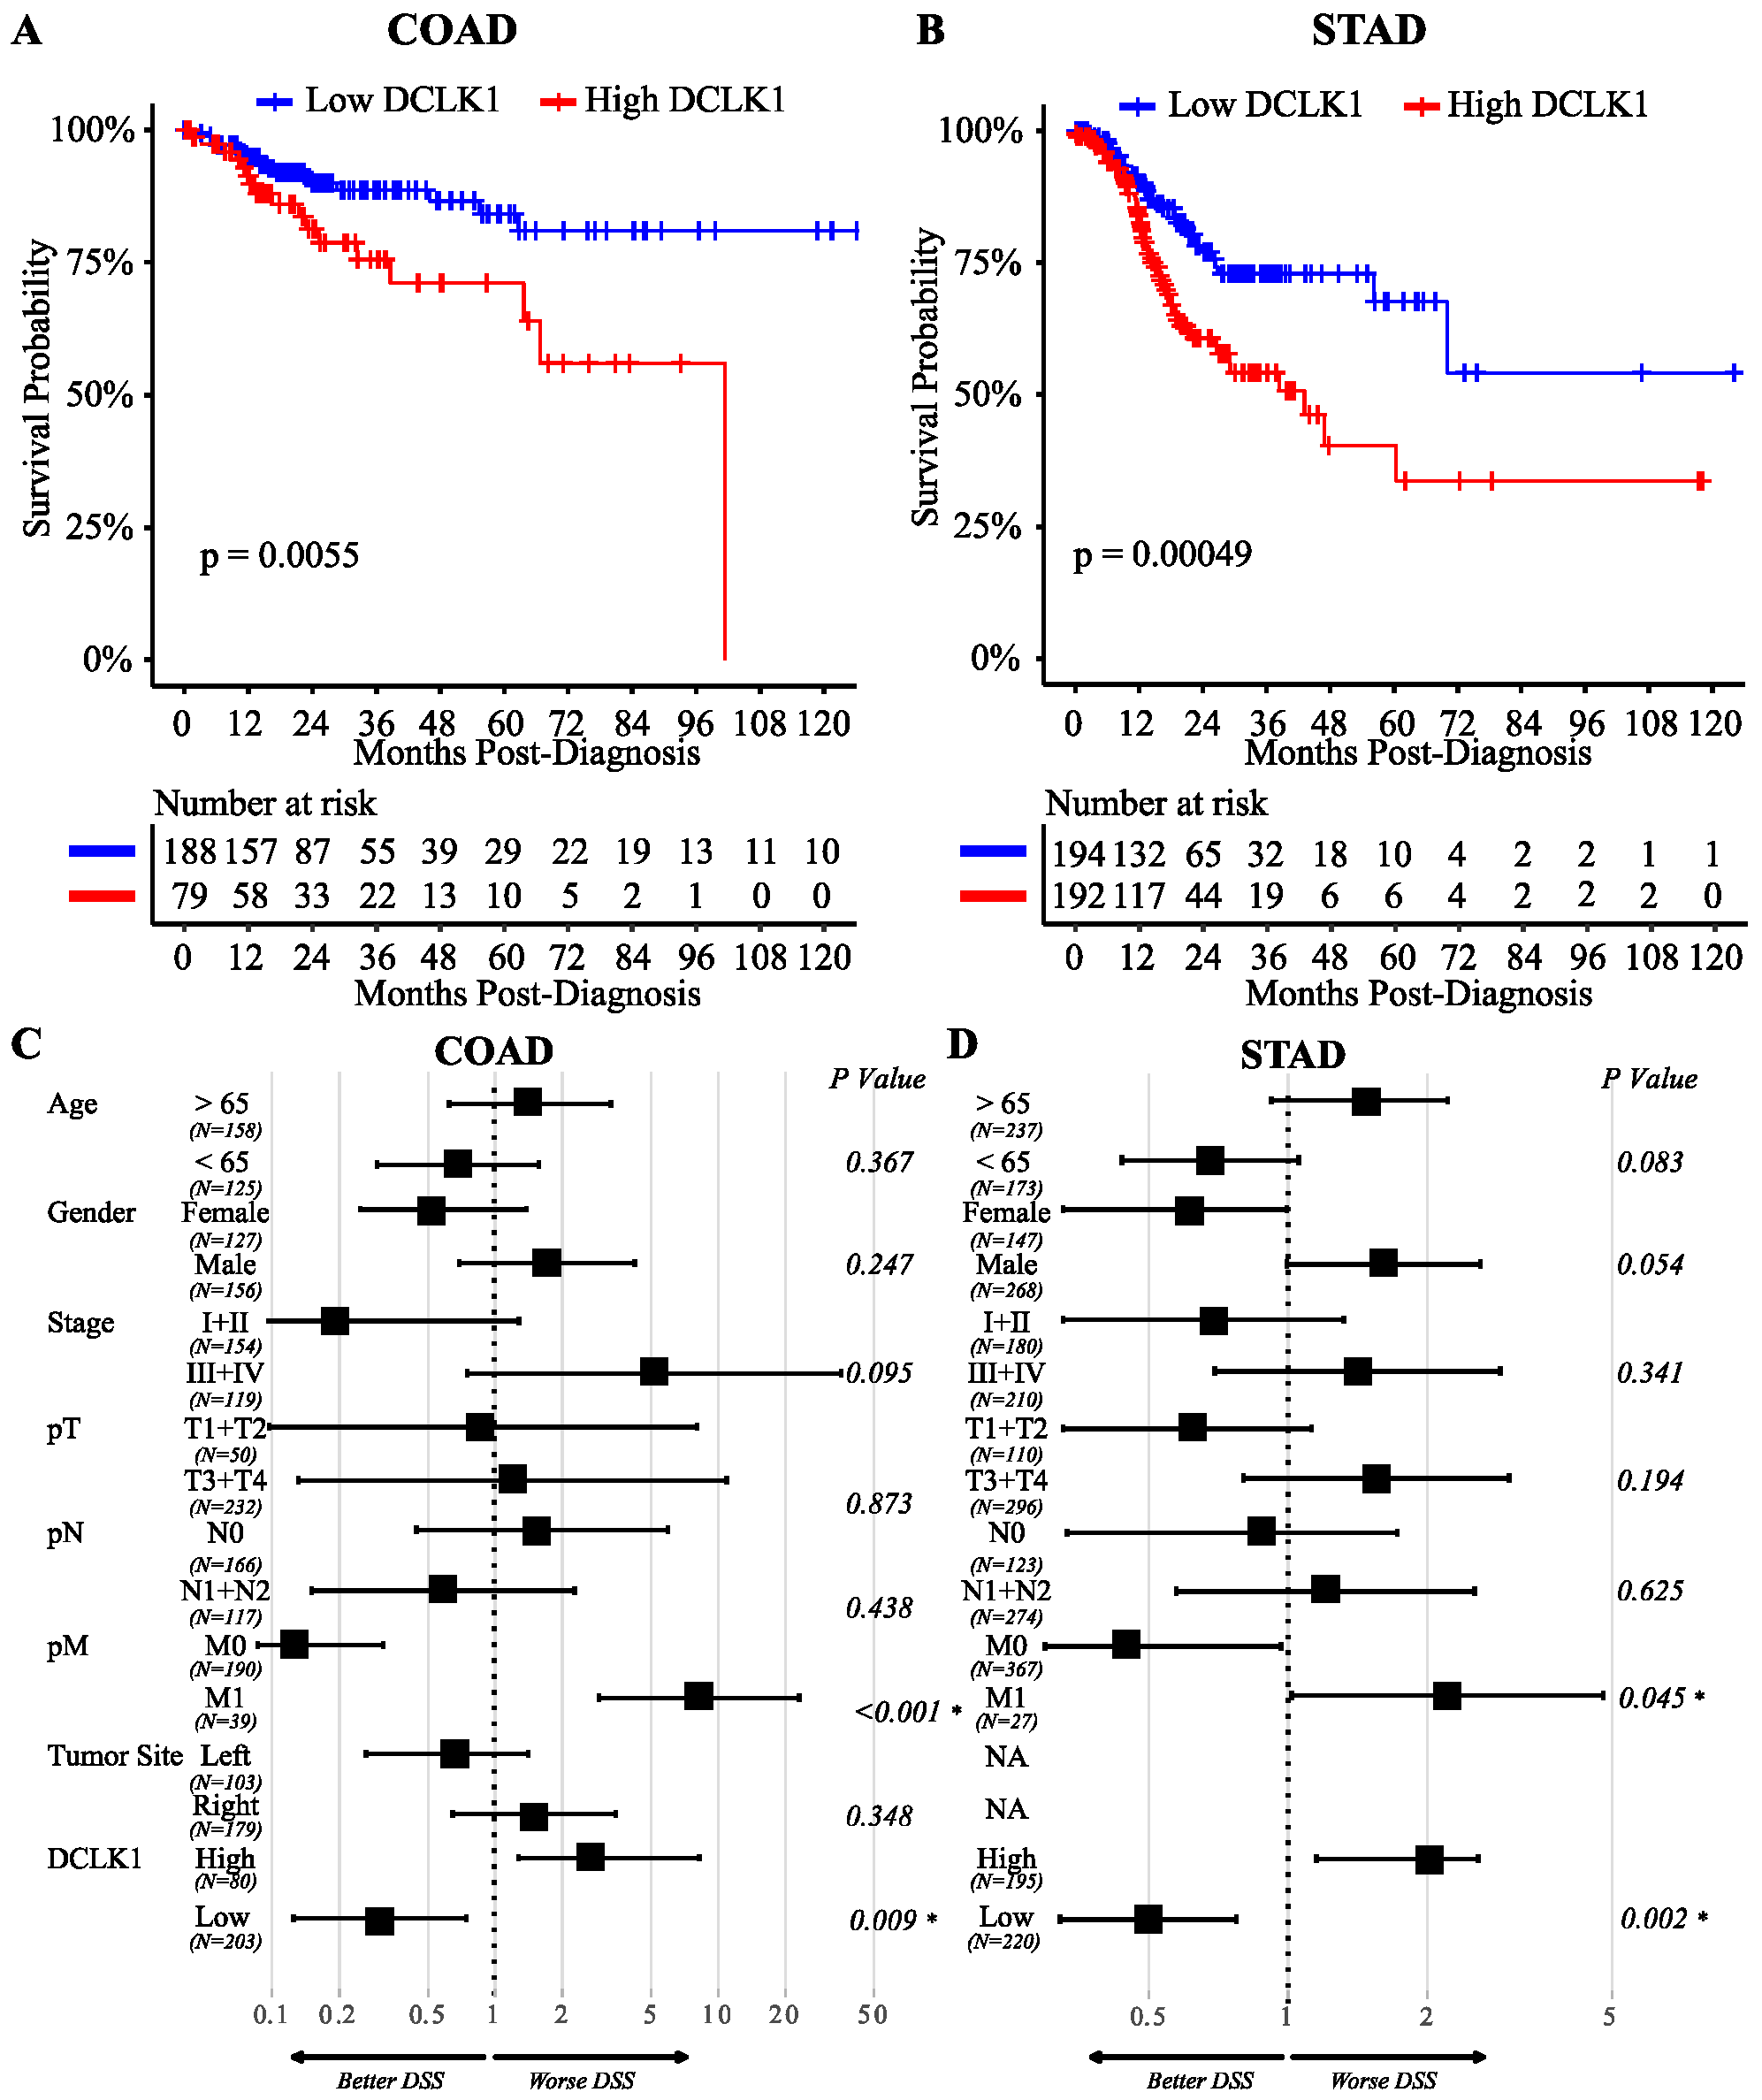 Cancers Free Full Text Cancer Stem Cell Marker Dclk1 Correlates With Tumorigenic Immune Infiltrates In The Colon And Gastric Adenocarcinoma Microenvironments